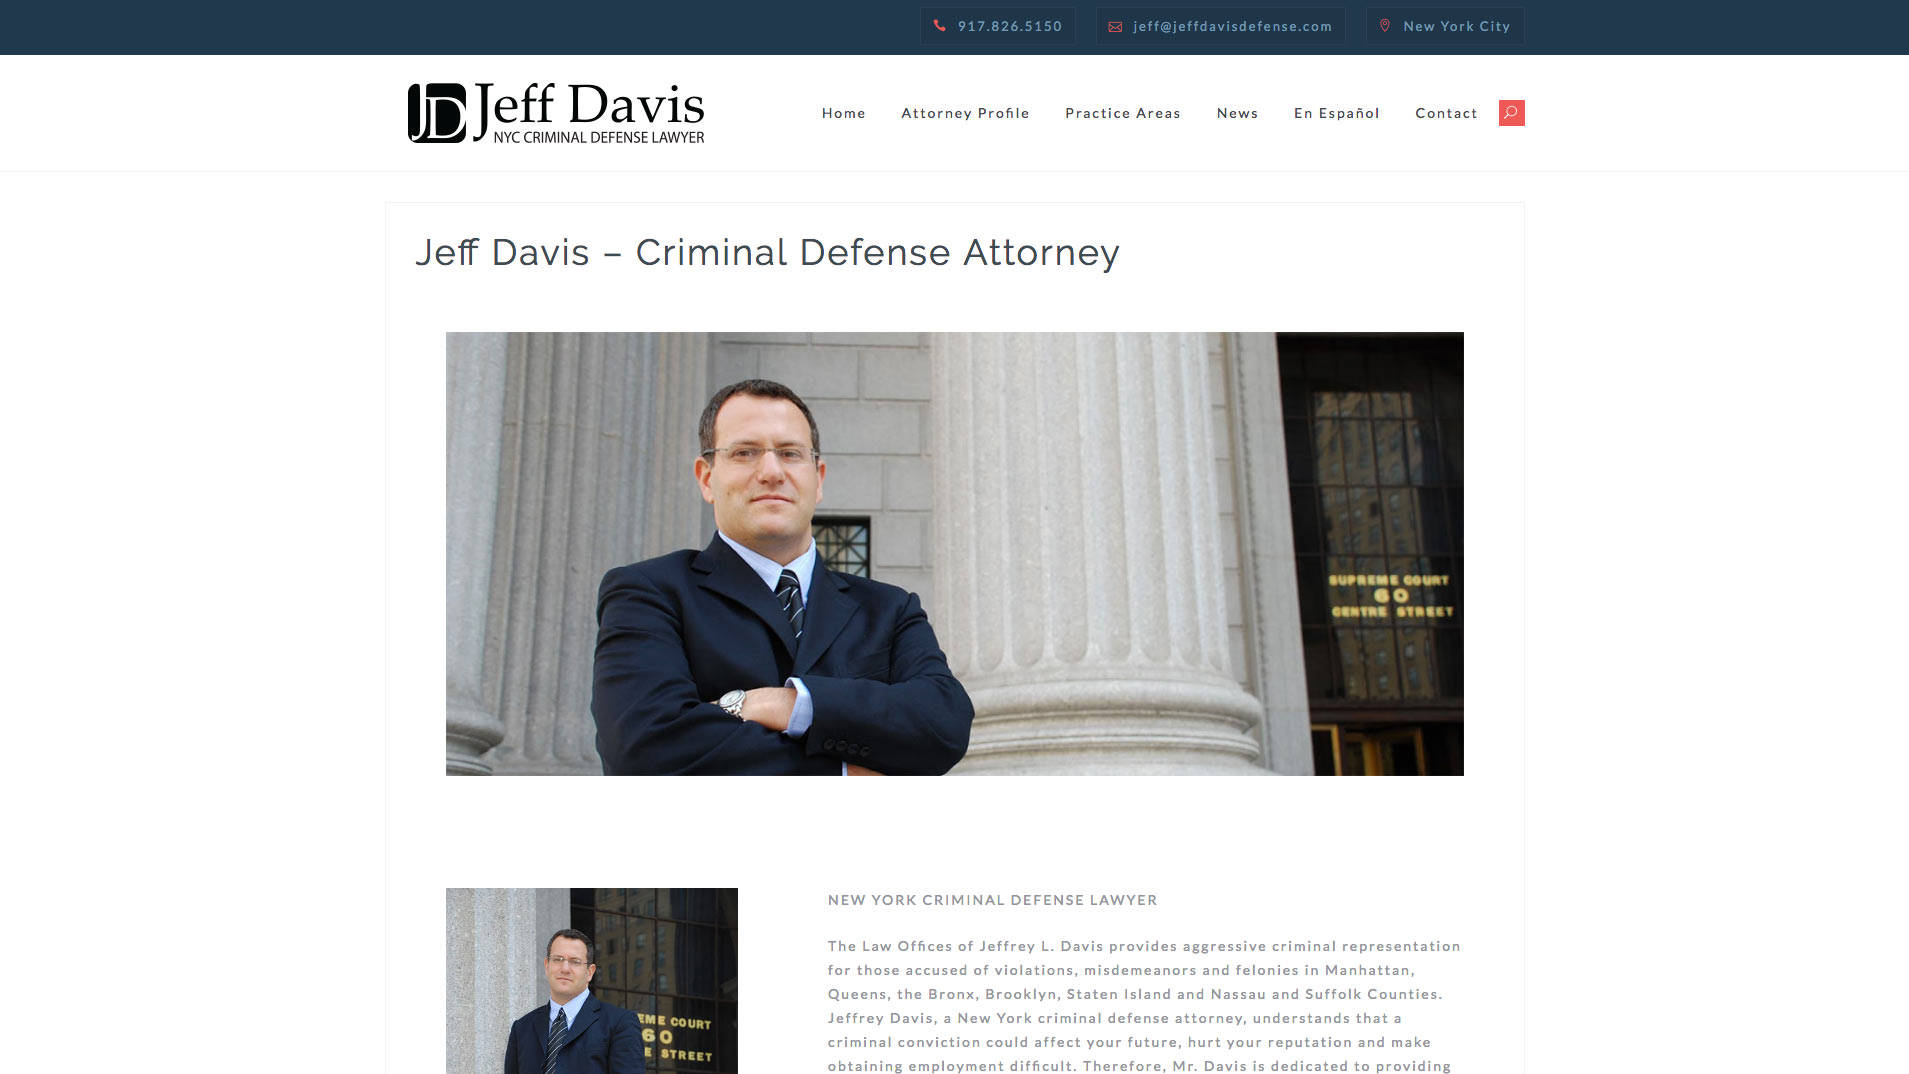 Jeff Davis - jeffdavisdefense.com